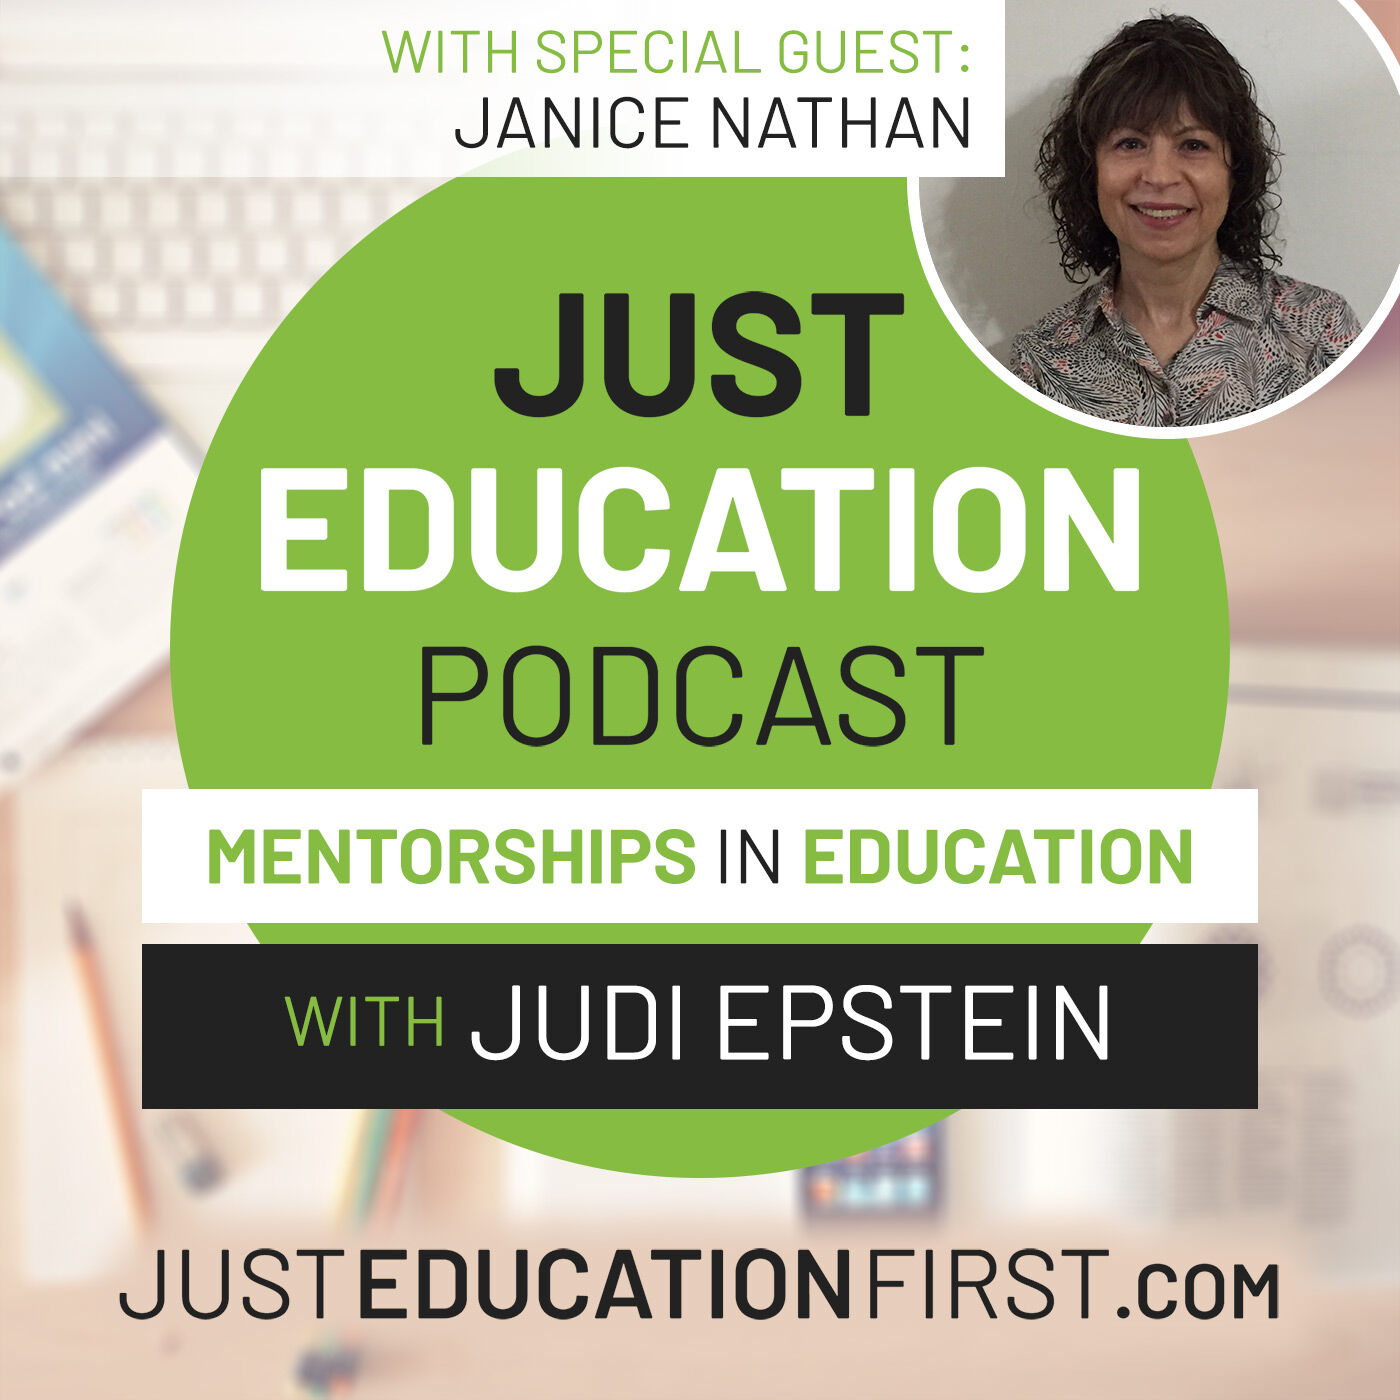 Episode 20 - Janice Nathan | Autism & Some Dos and Don'ts